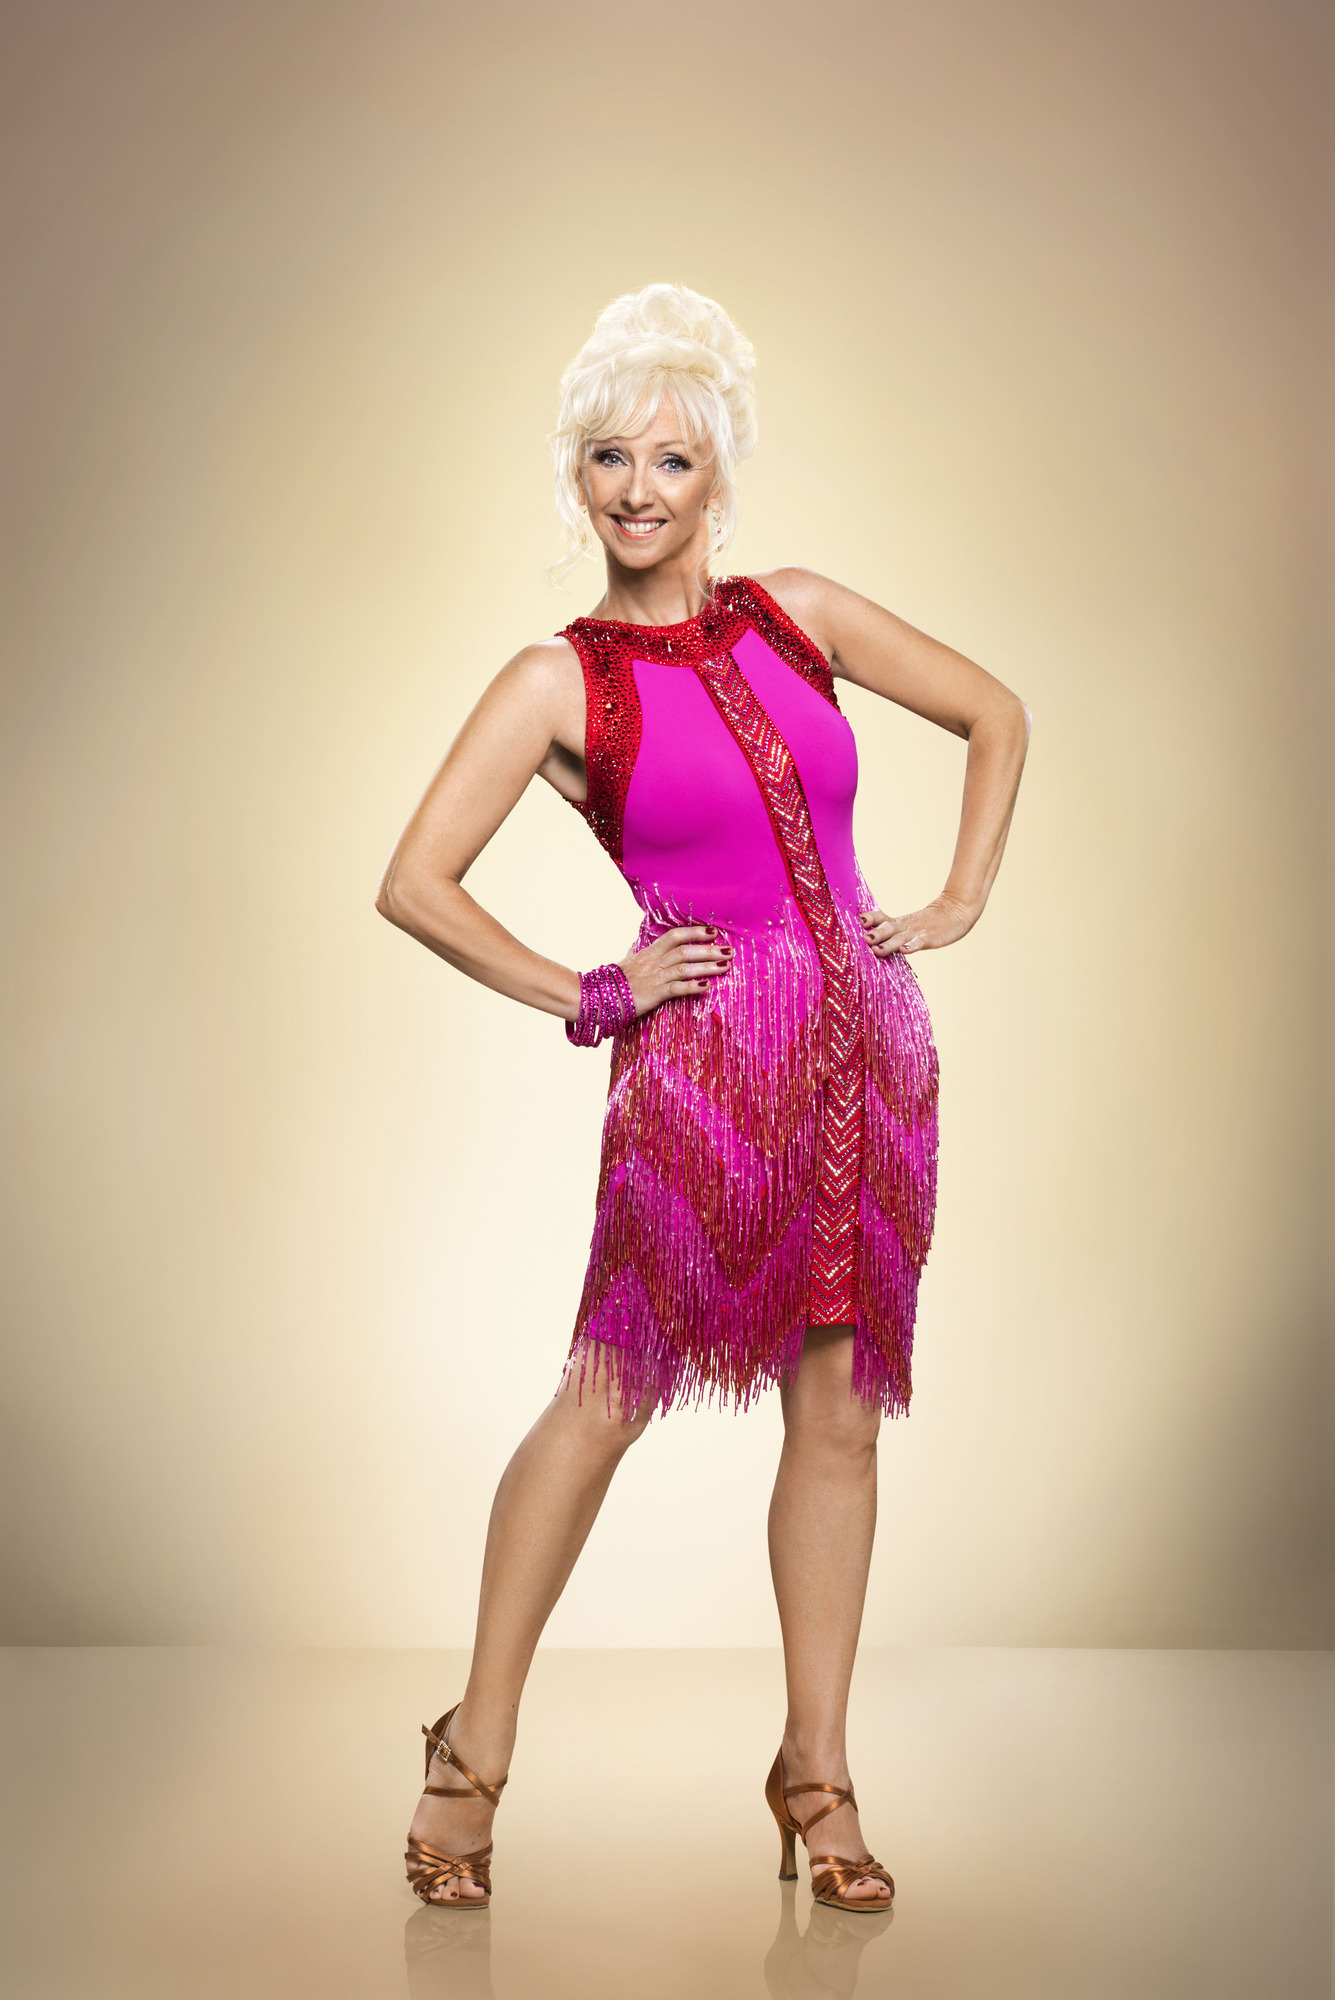 Strictly Come Dancing contestant Debbie McGee